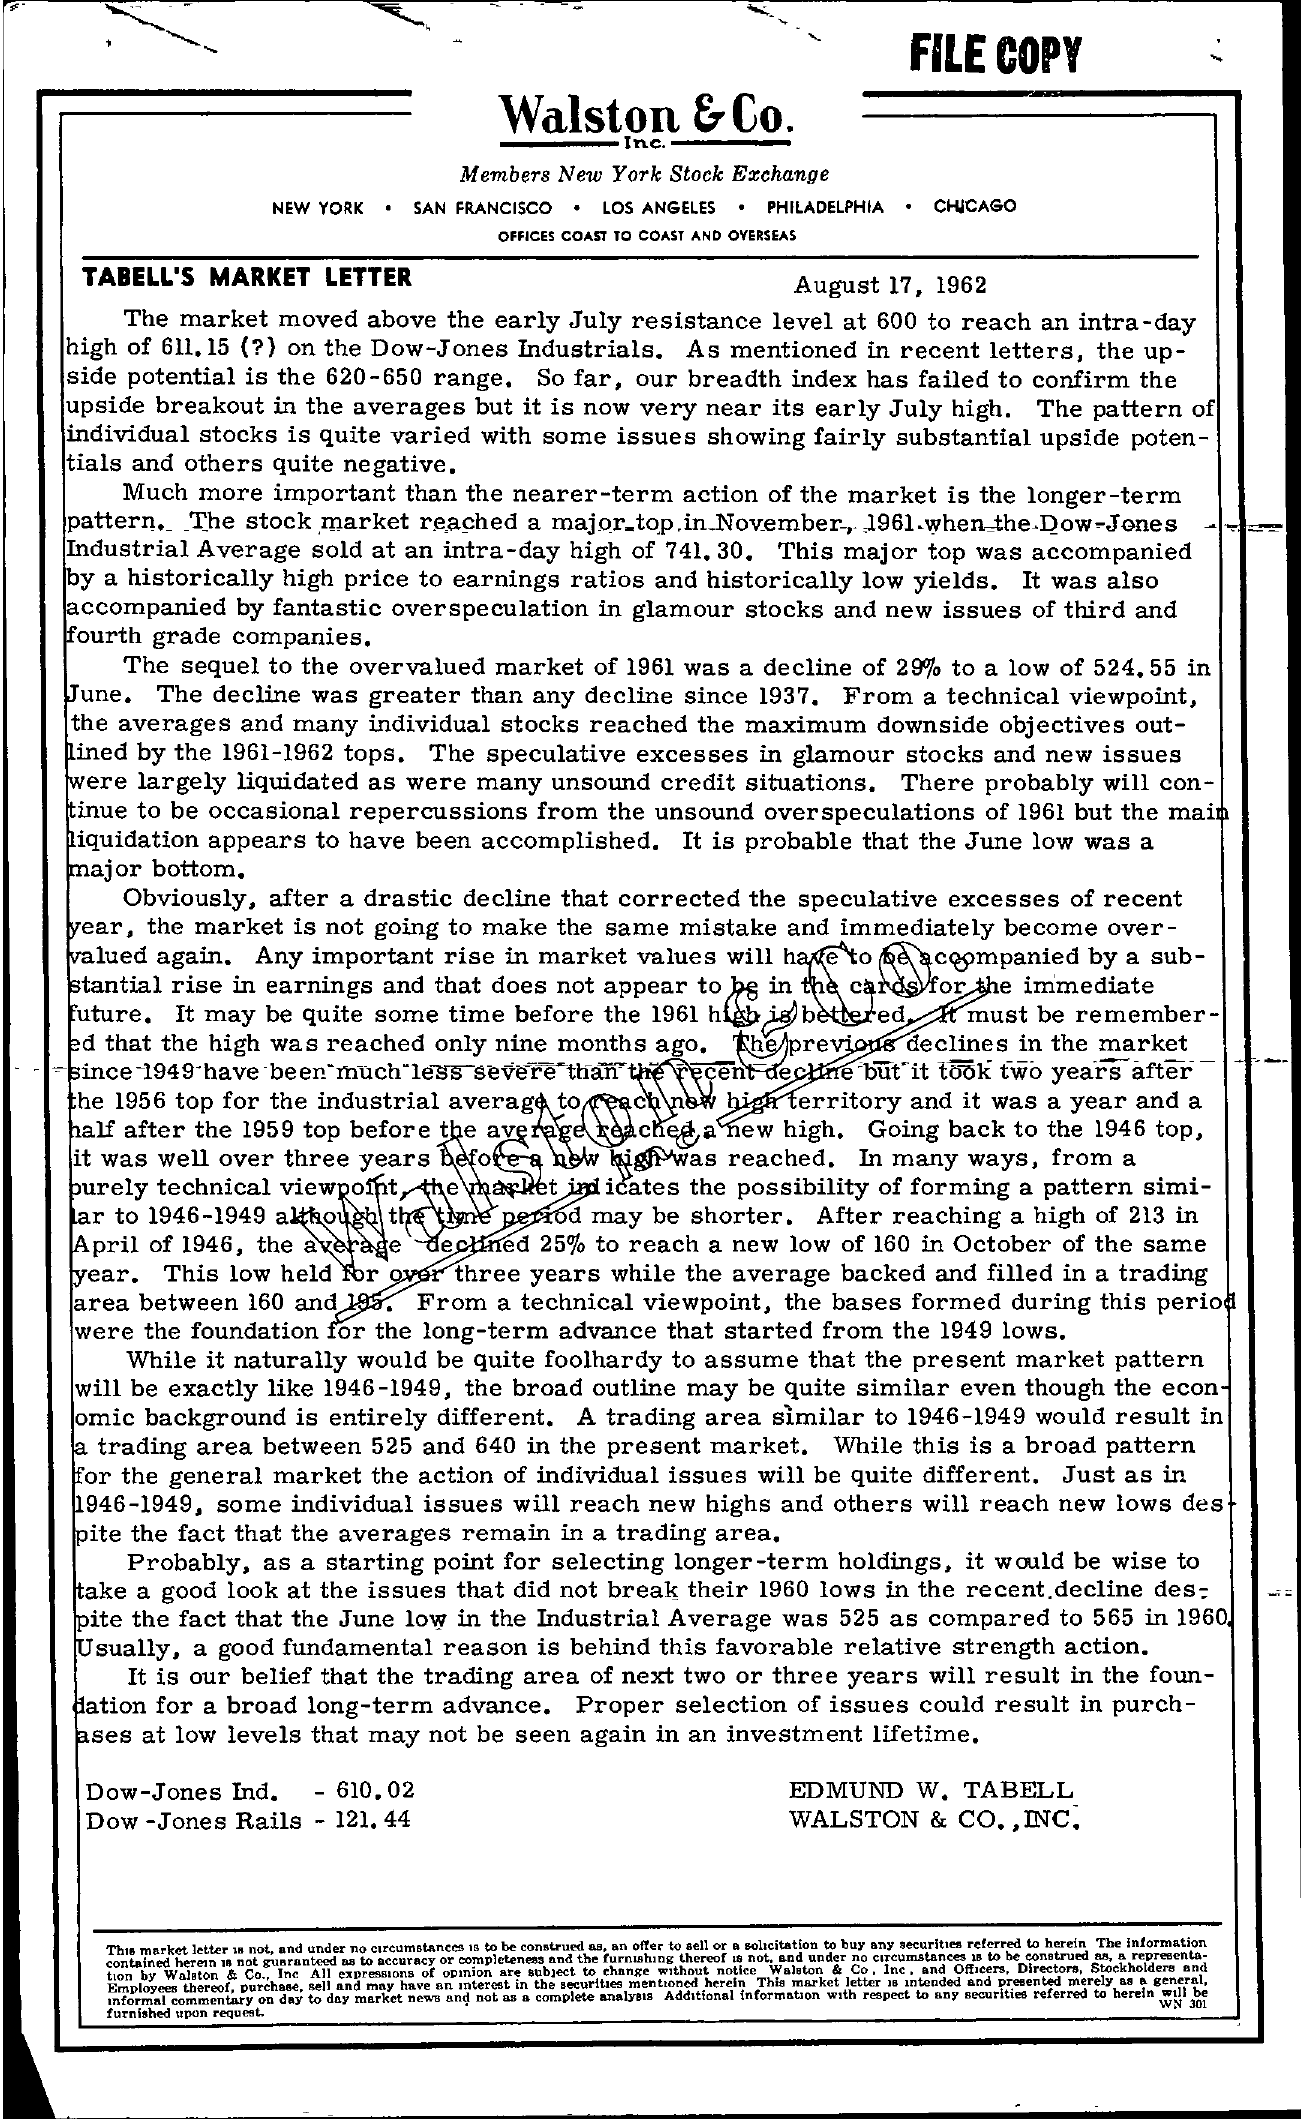 Tabell's Market Letter - August 17, 1962